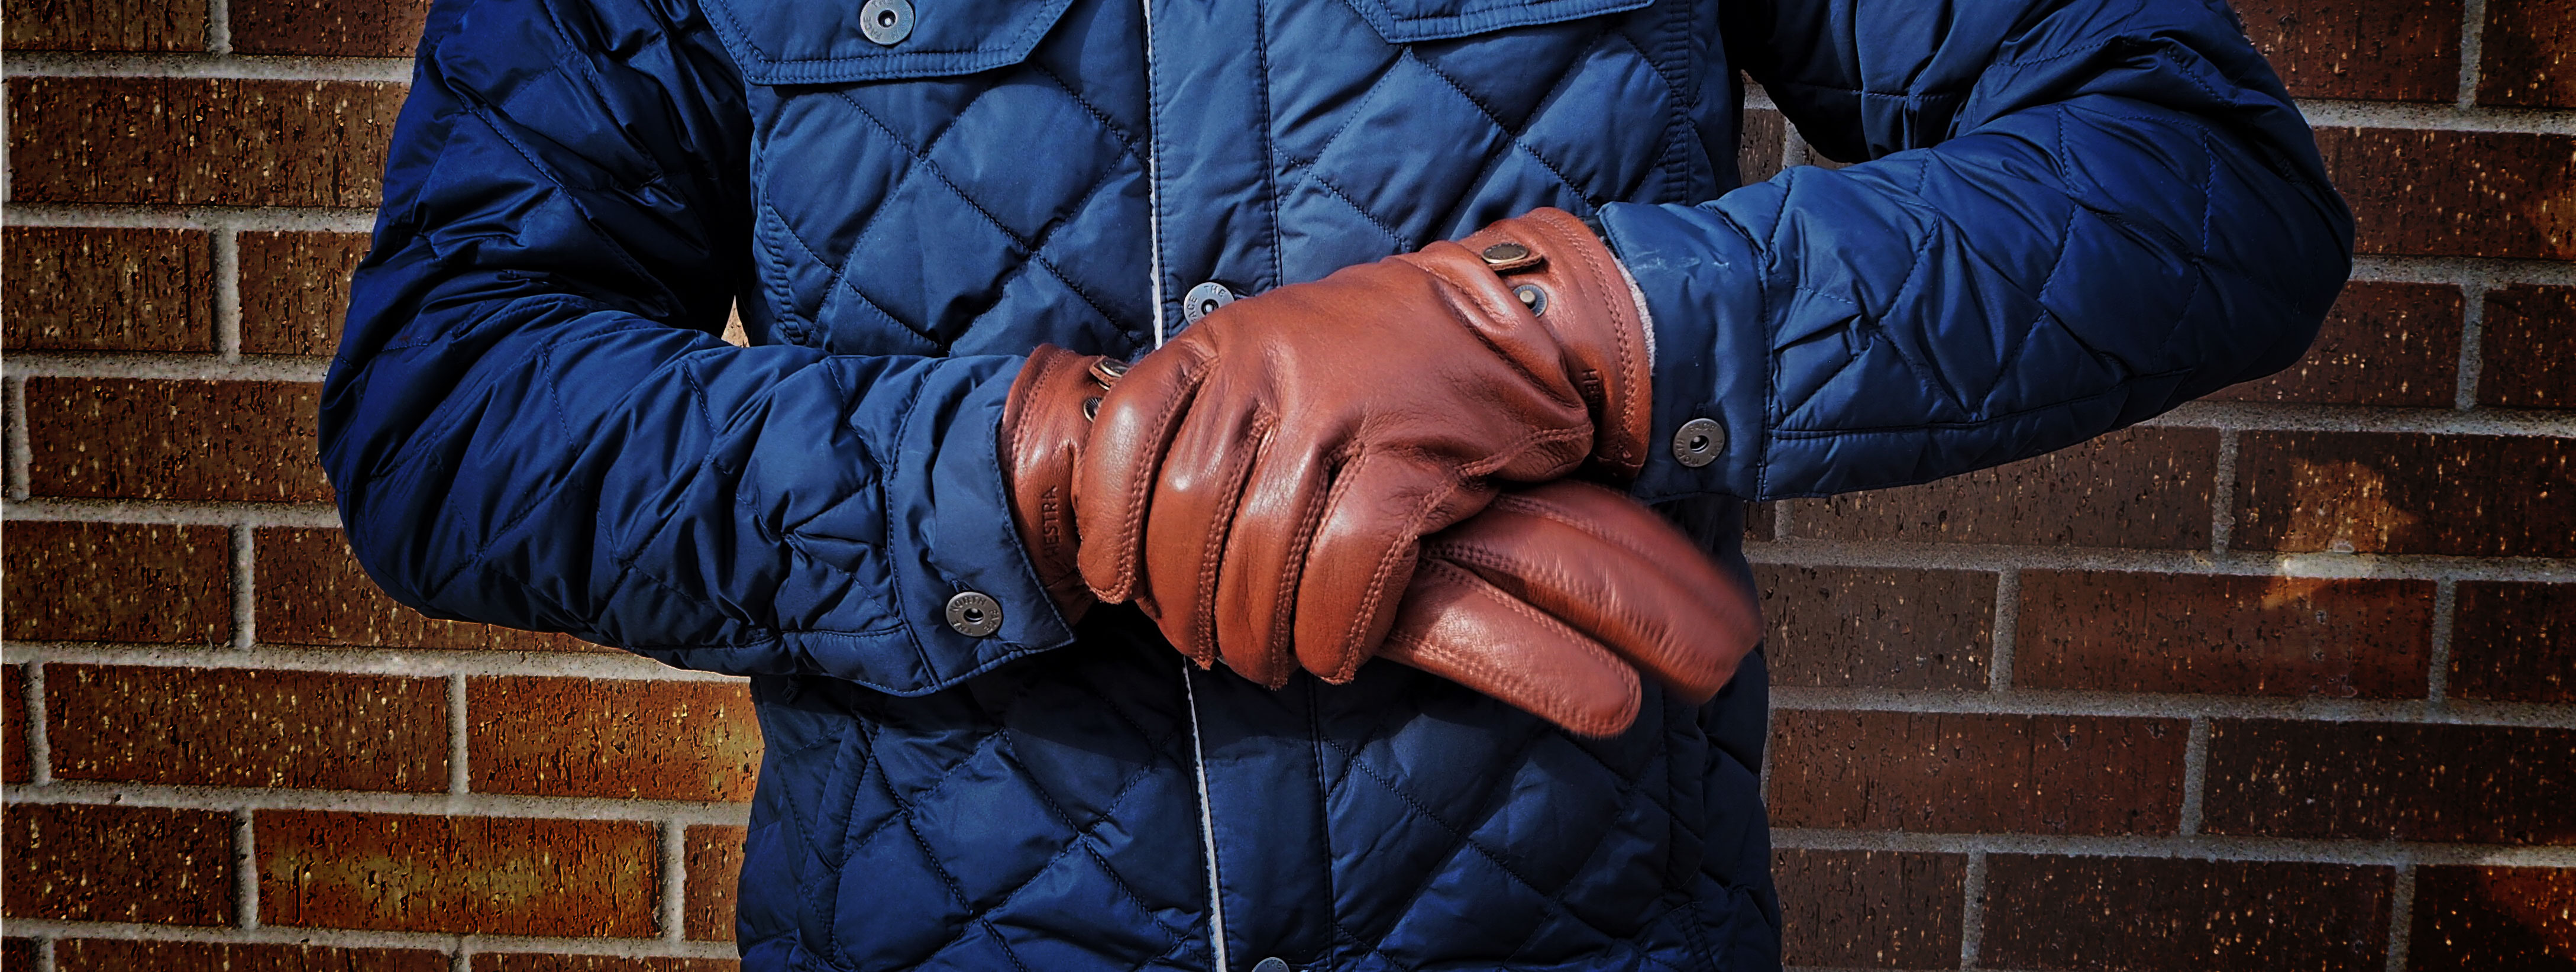 Hestra mens gloves - Featured Gear Hestra Gloves